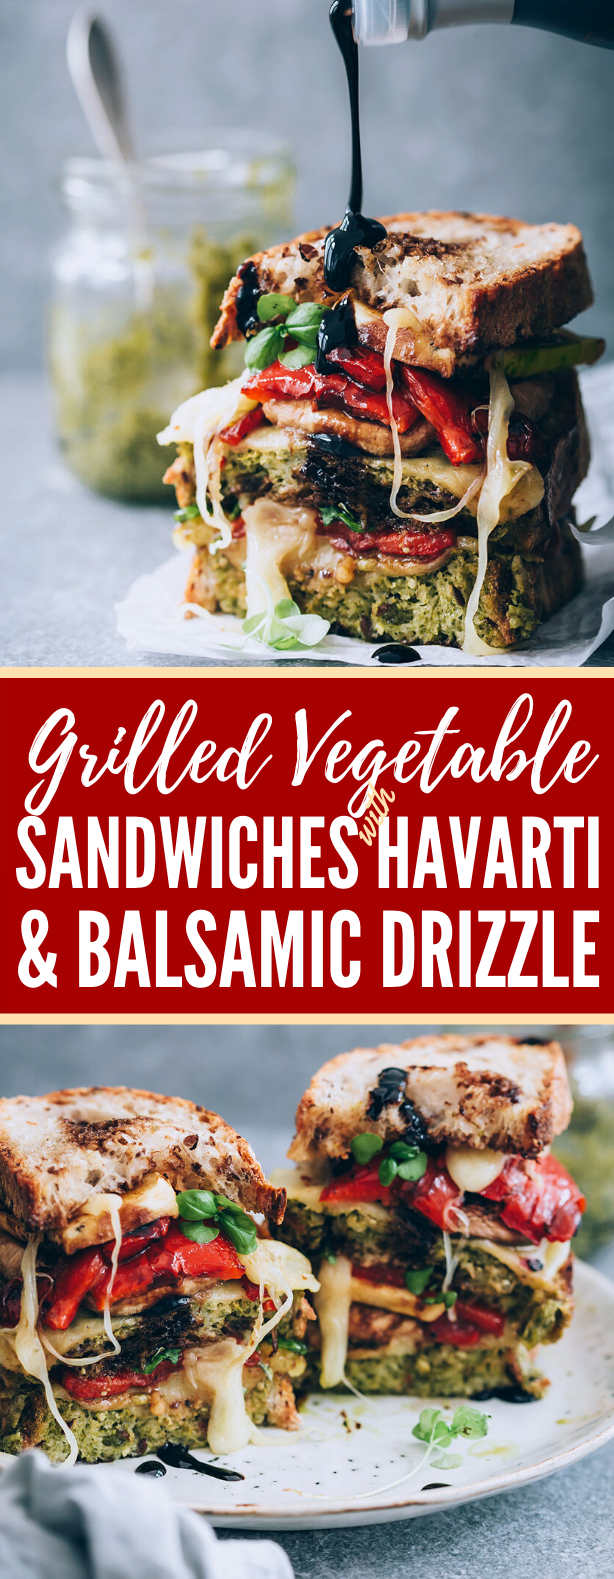 GRILLED VEGETABLE SANDWICHES WITH HAVARTI AND BALSAMIC DRIZZLE #vegetarian #lunch